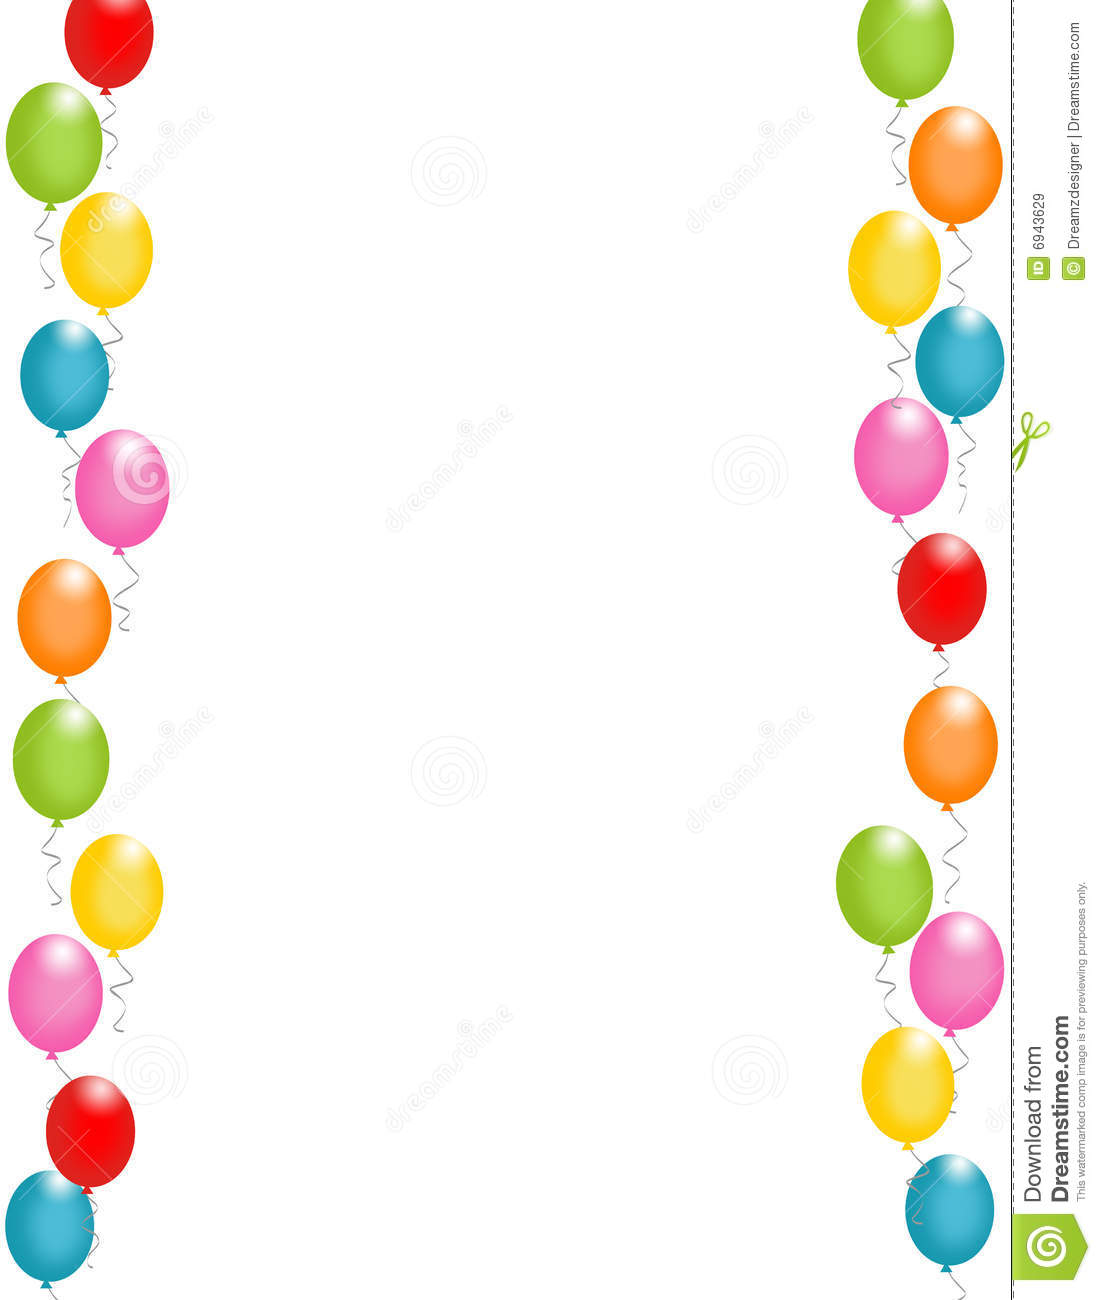 Cartas de cumplea c3 b1os colouring pages -  Holiday Coloring Pages Feliz Cumpleanos Coloring Pages Colorful Balloons Border Frame Illustration For Birthday